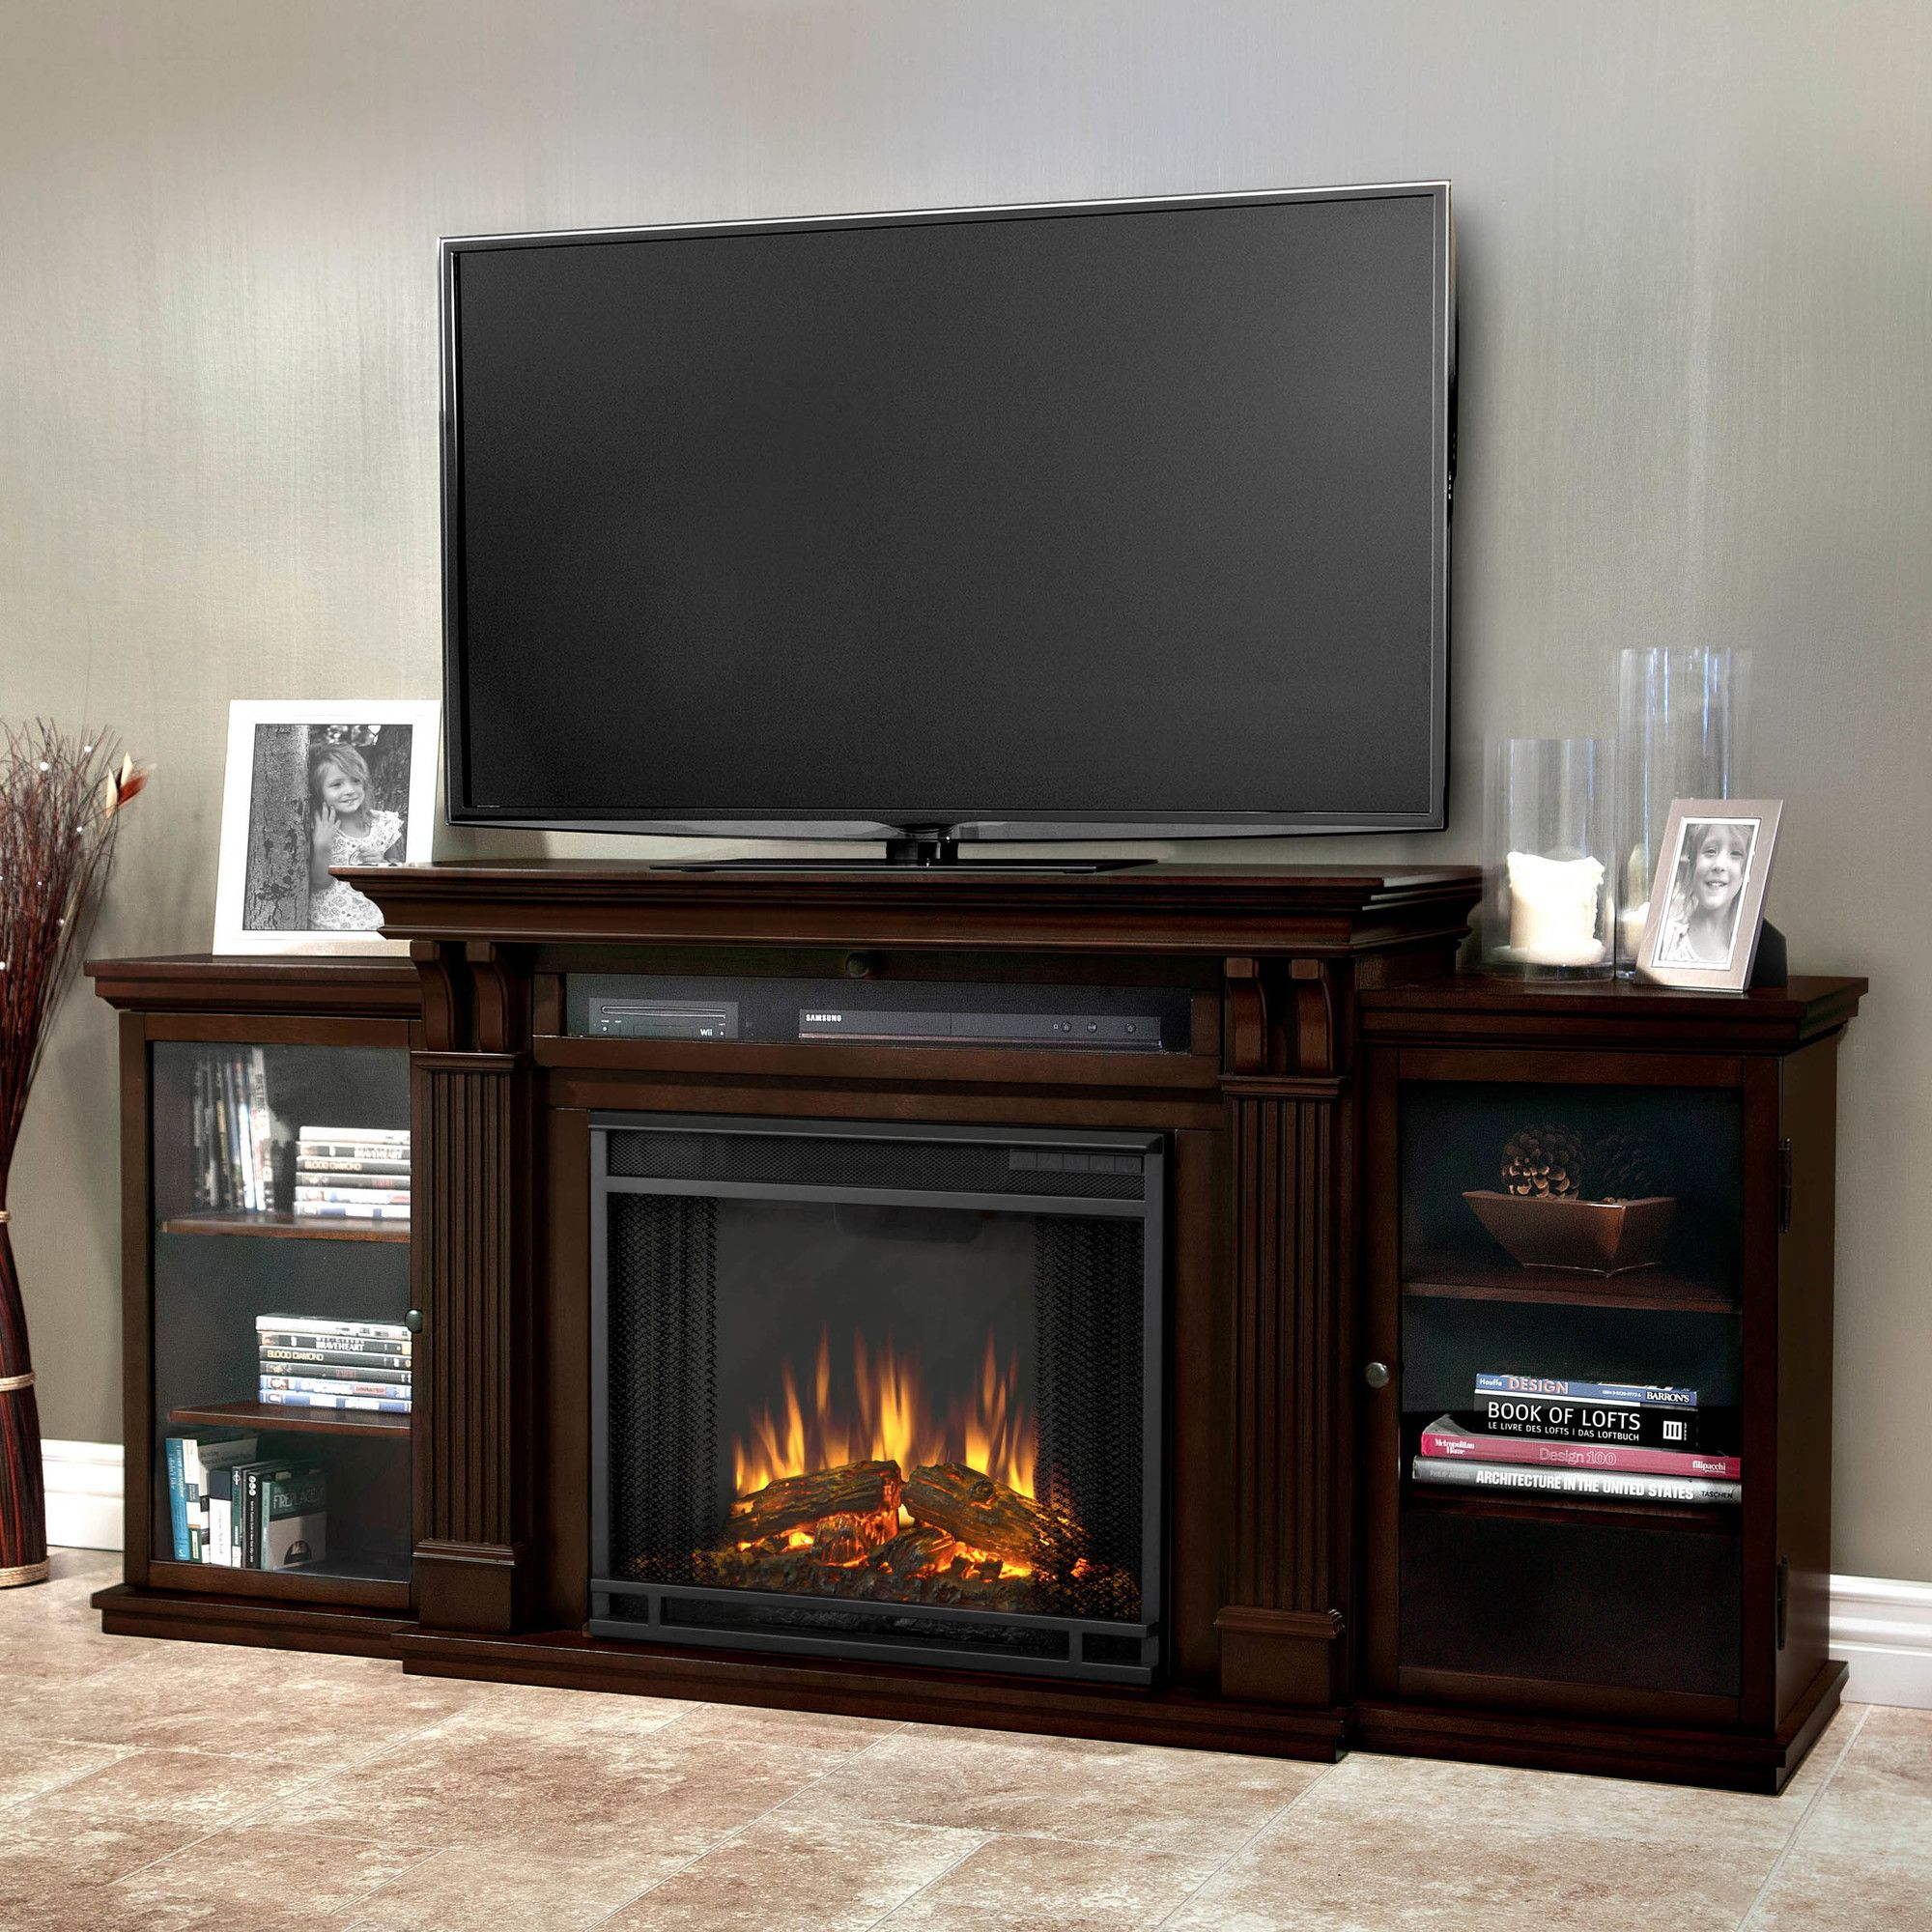 Calie Tv Stand For Tvs Up To 75 With Electric Fireplace Included